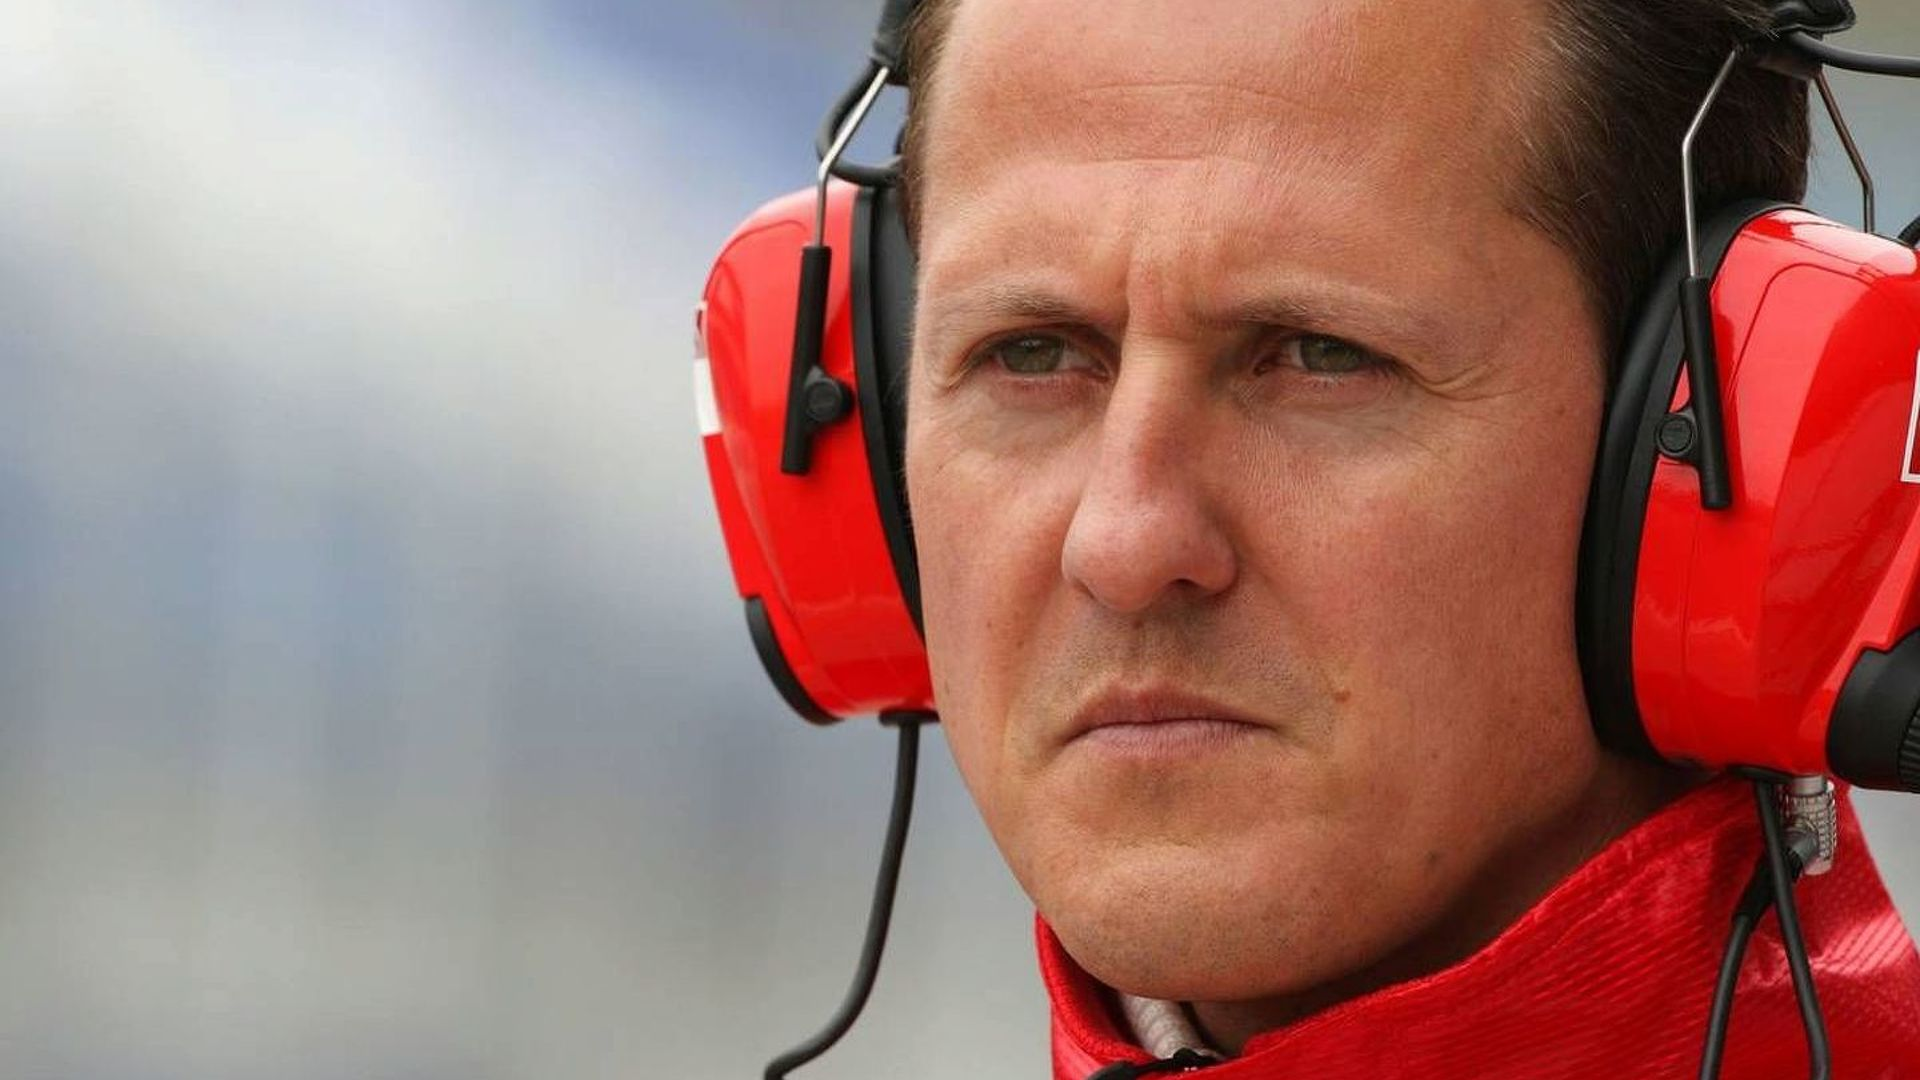 Manager hits back after Prost's Schu jibe